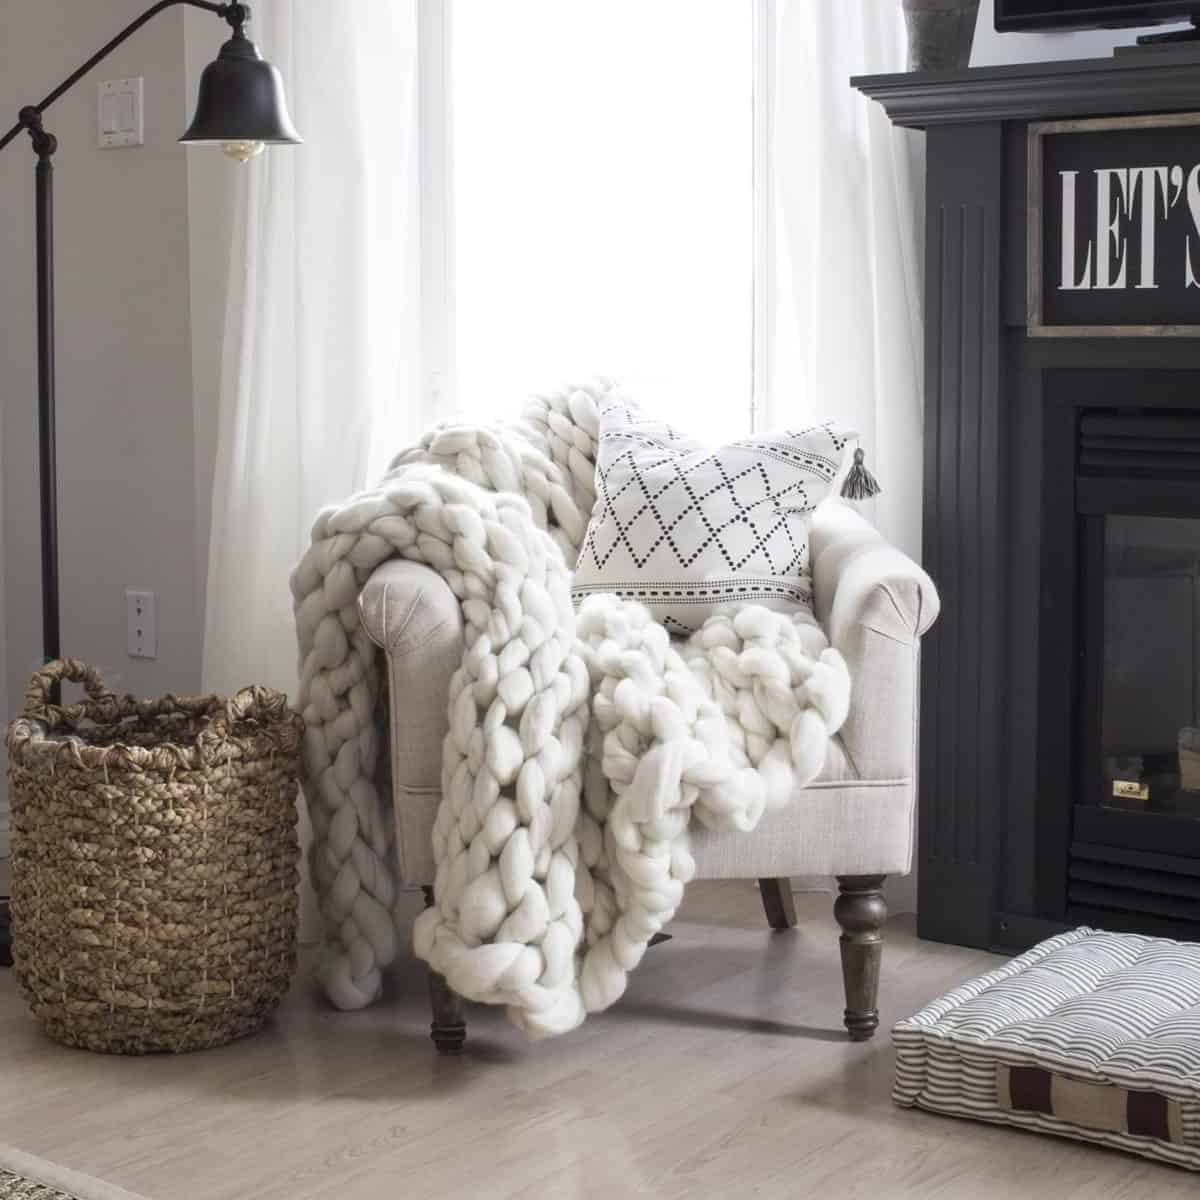 farmhouse style chair with a chunky knit blanket, basket and lamp beside a grey fireplace